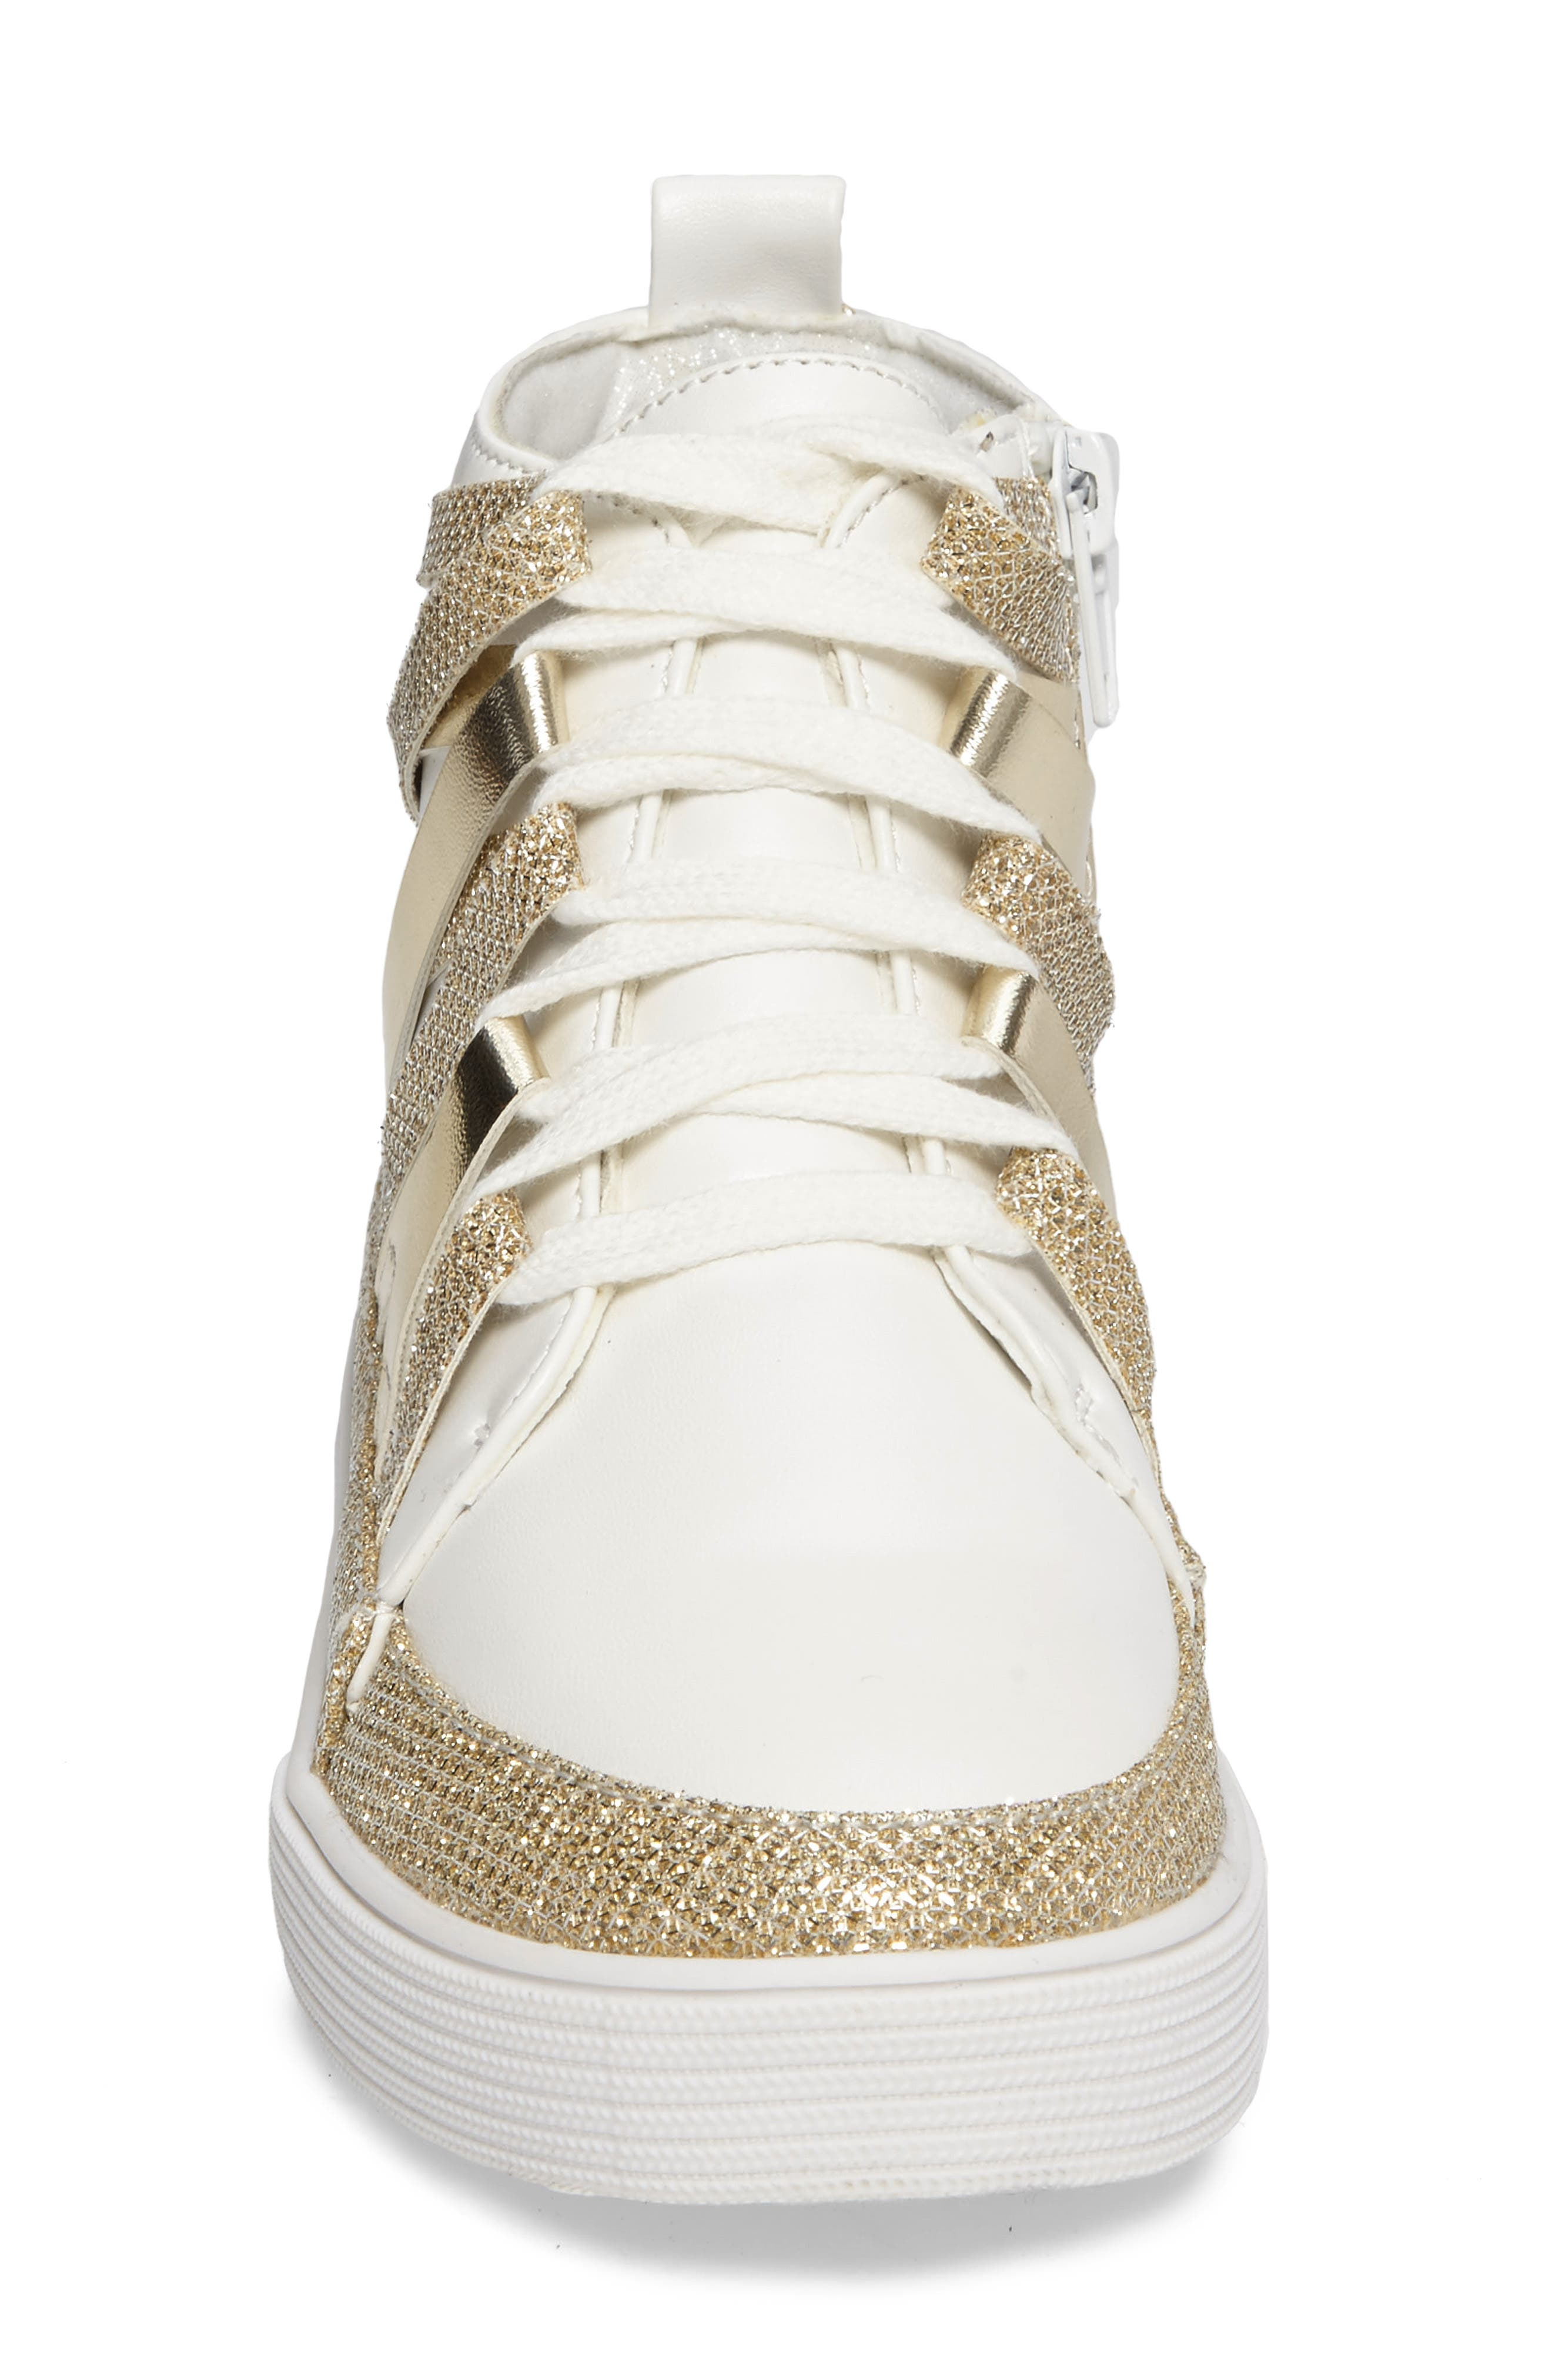 Vance Strappy High Top Sneaker,                             Alternate thumbnail 3, color,                             711